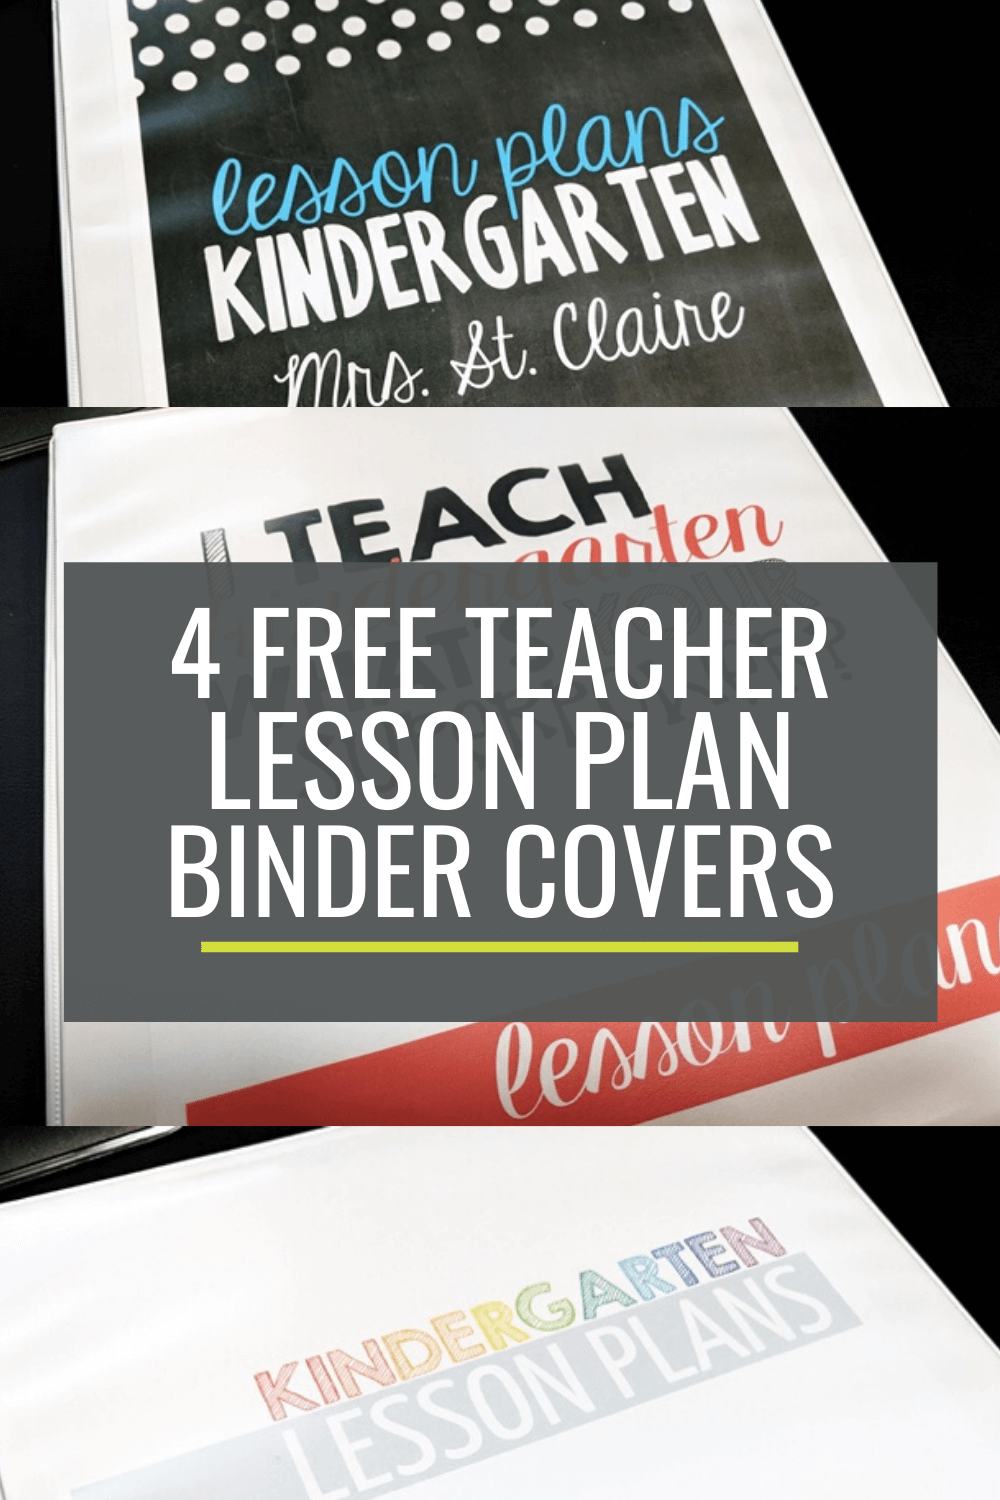 4 Free Teacher Lesson Planning Binder Covers